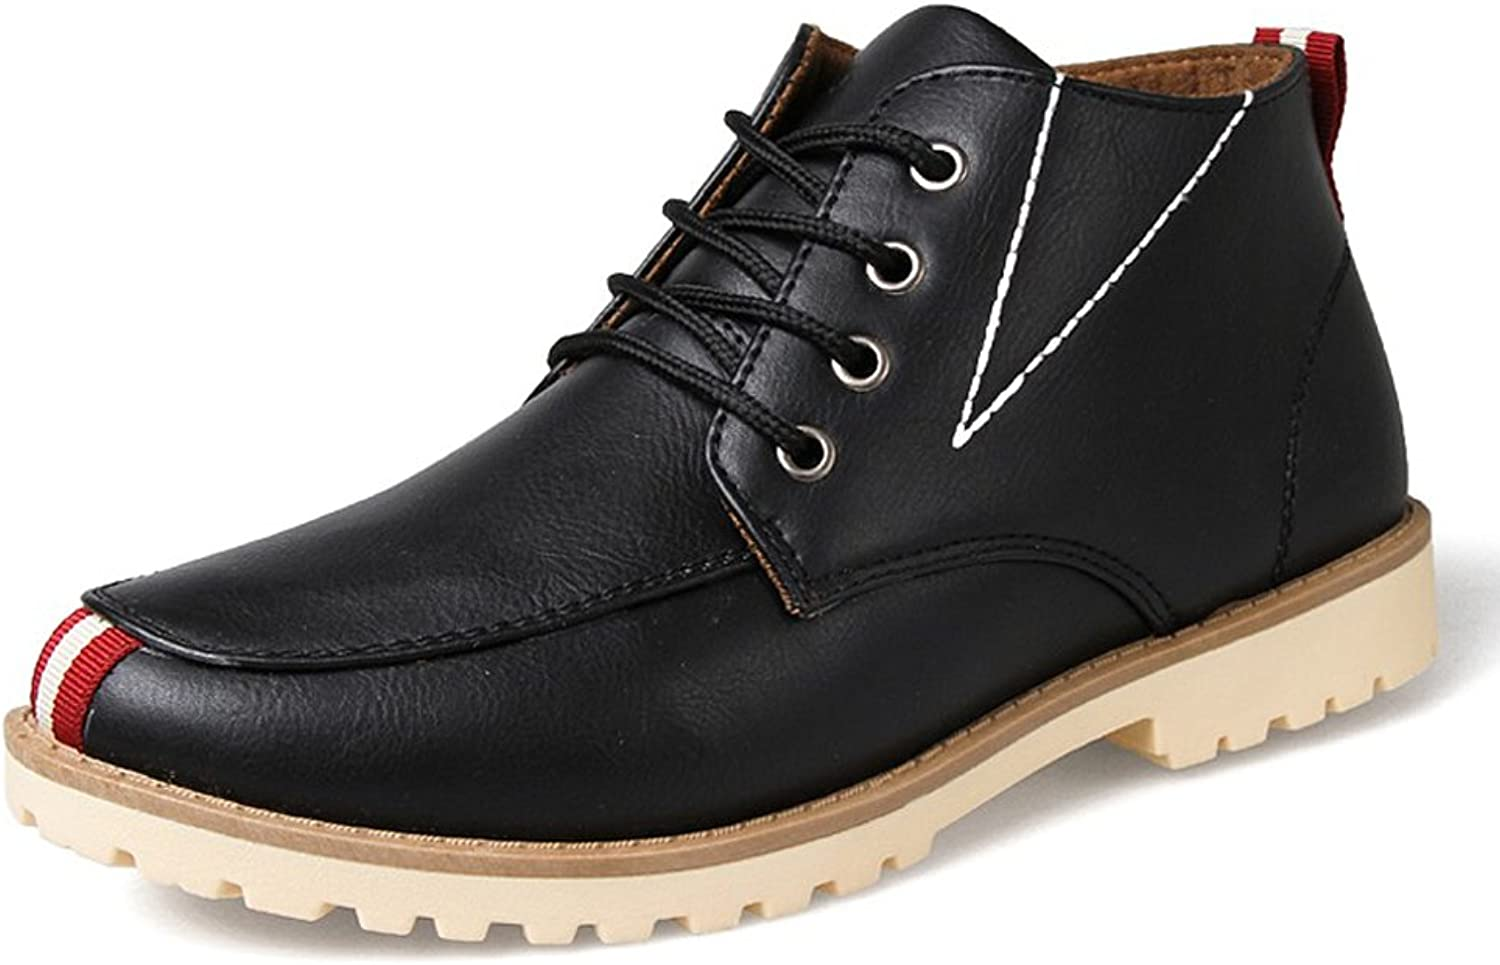 Wevans Cool Leather Chukka Boots for Men